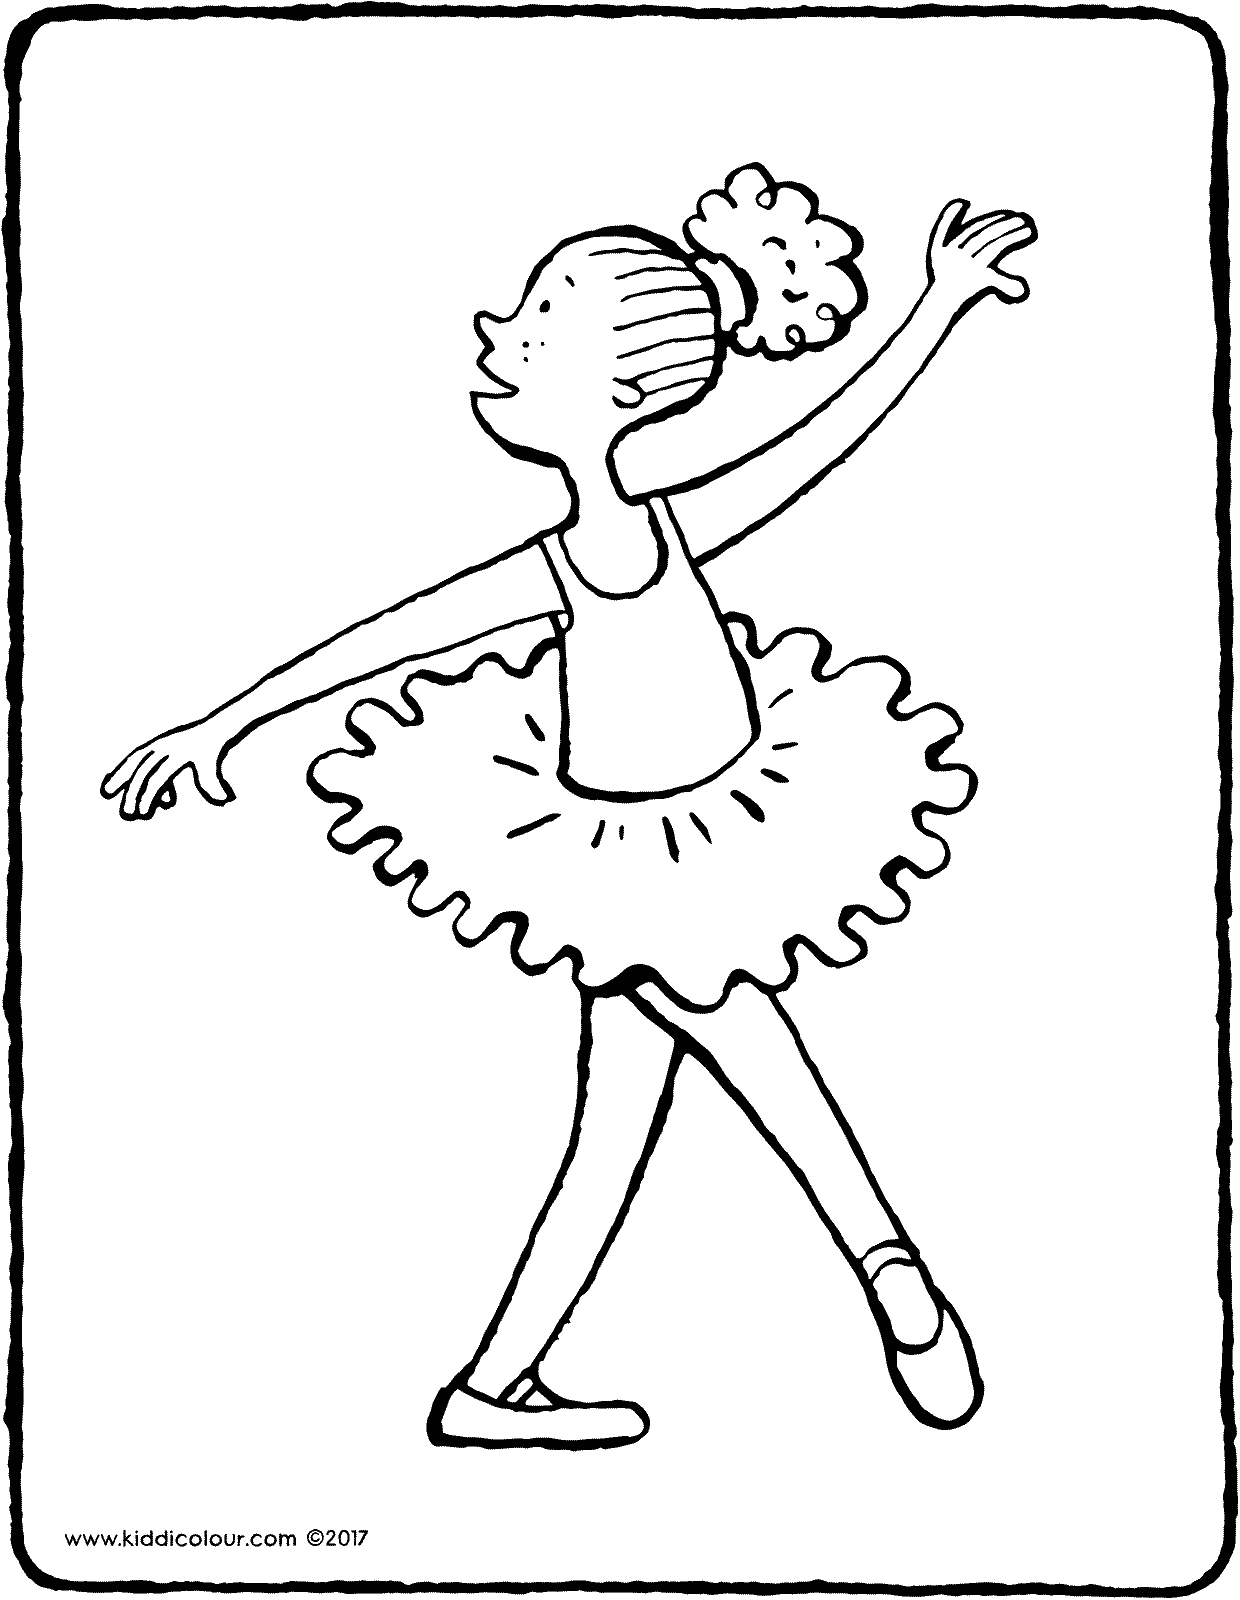 ballet dancing colouring page page drawing picture 01V